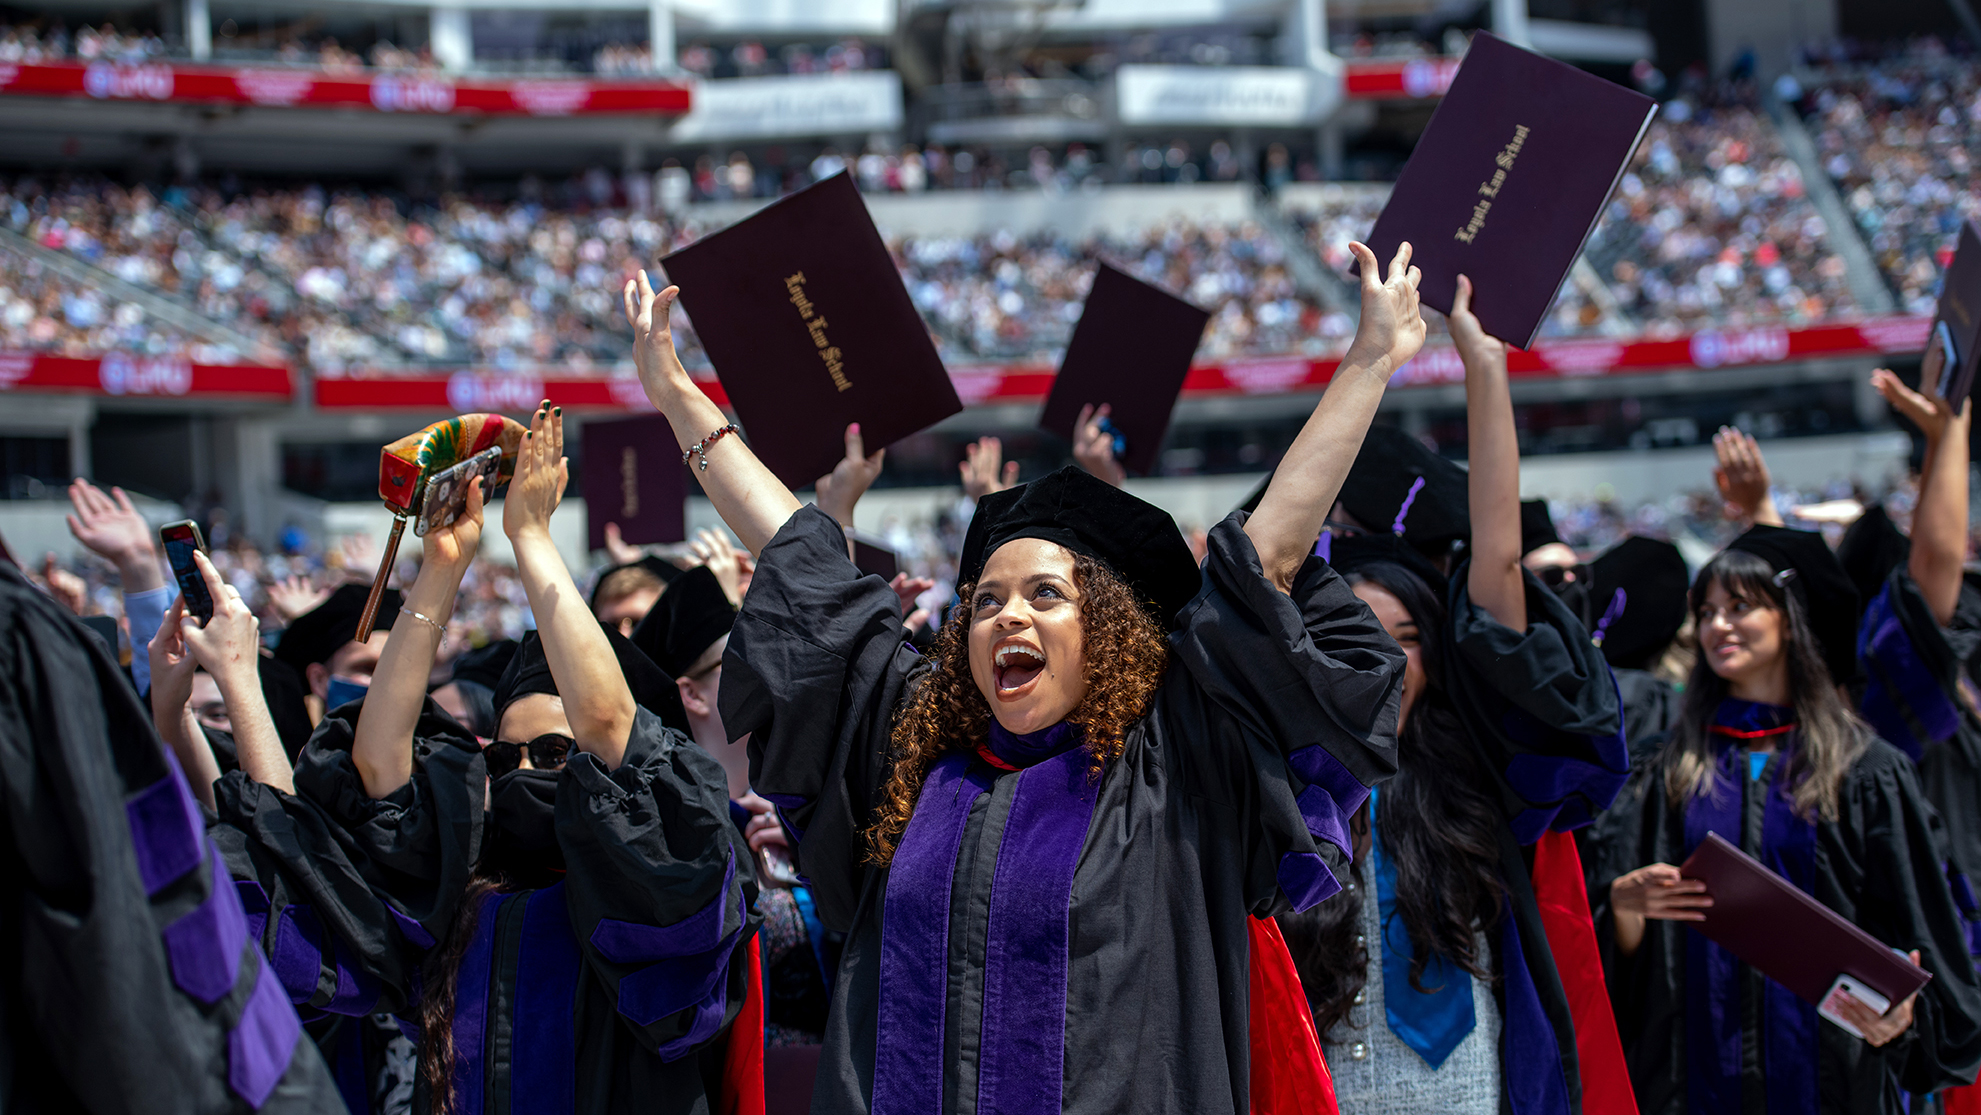 Students celebrating in SoFi Stadium at the conclusion of the 108th Commencement Exercises